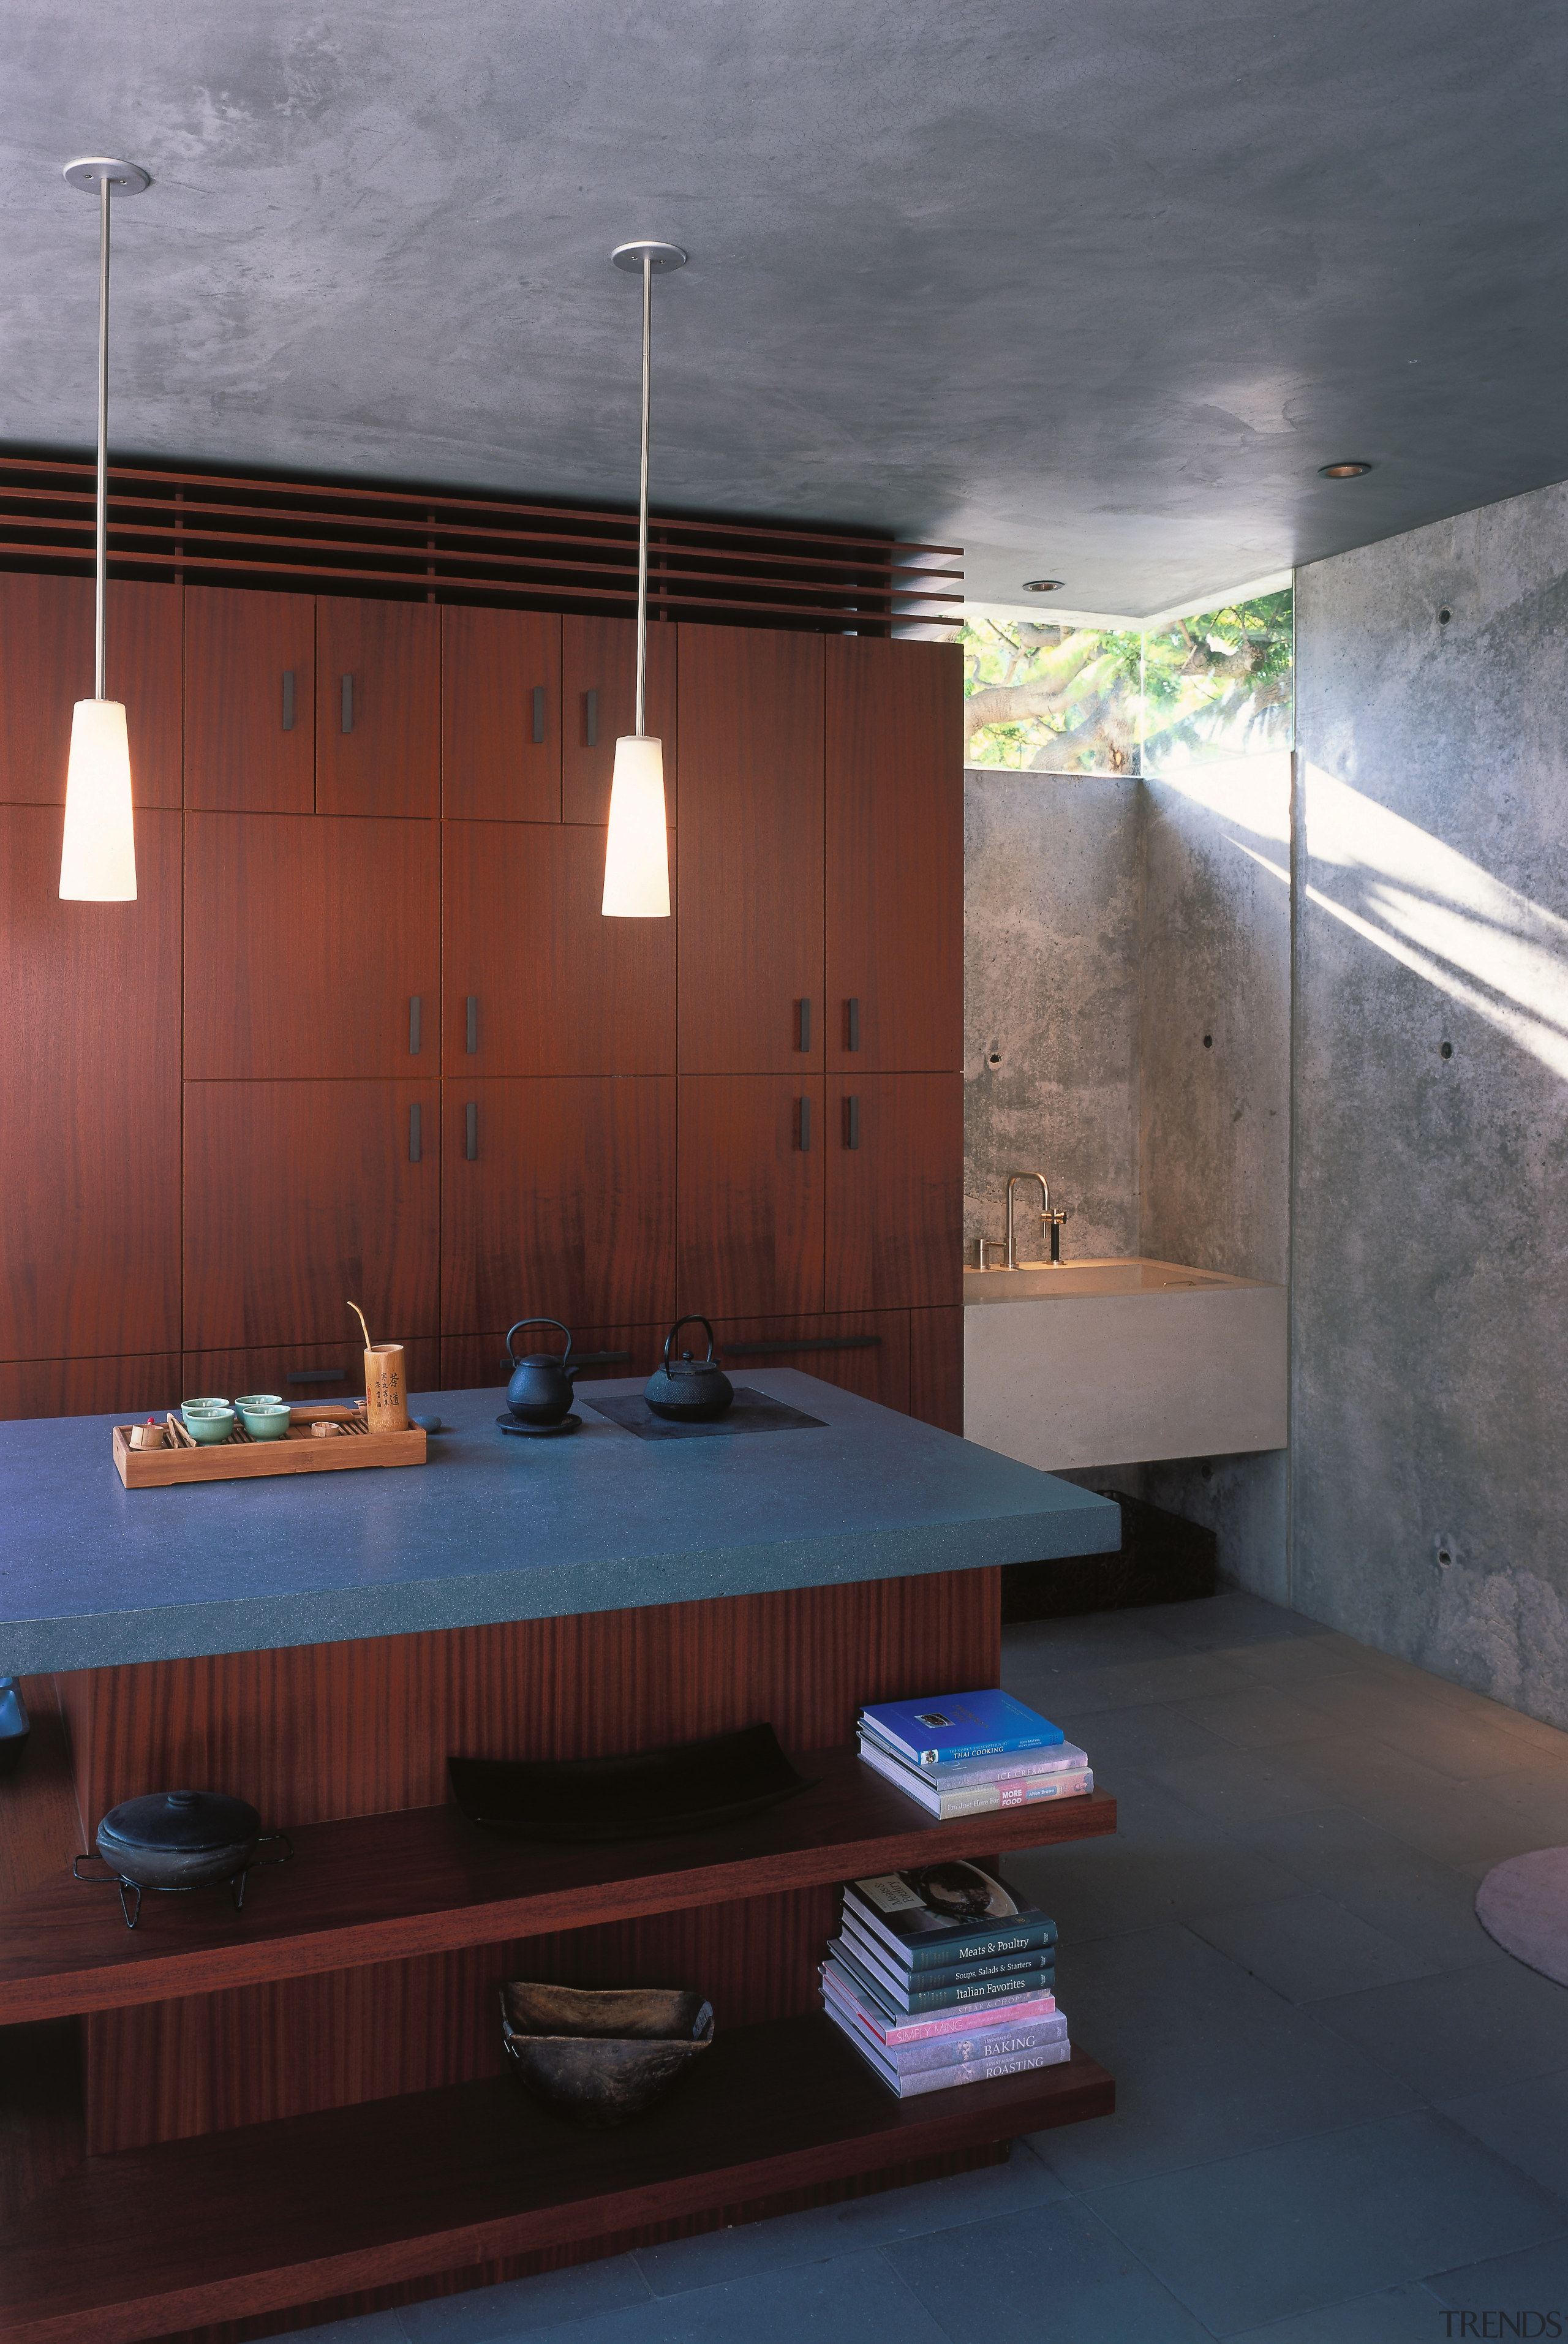 A view of a kitchen by David Hertz architecture, bathroom, ceiling, daylighting, house, interior design, room, black, gray